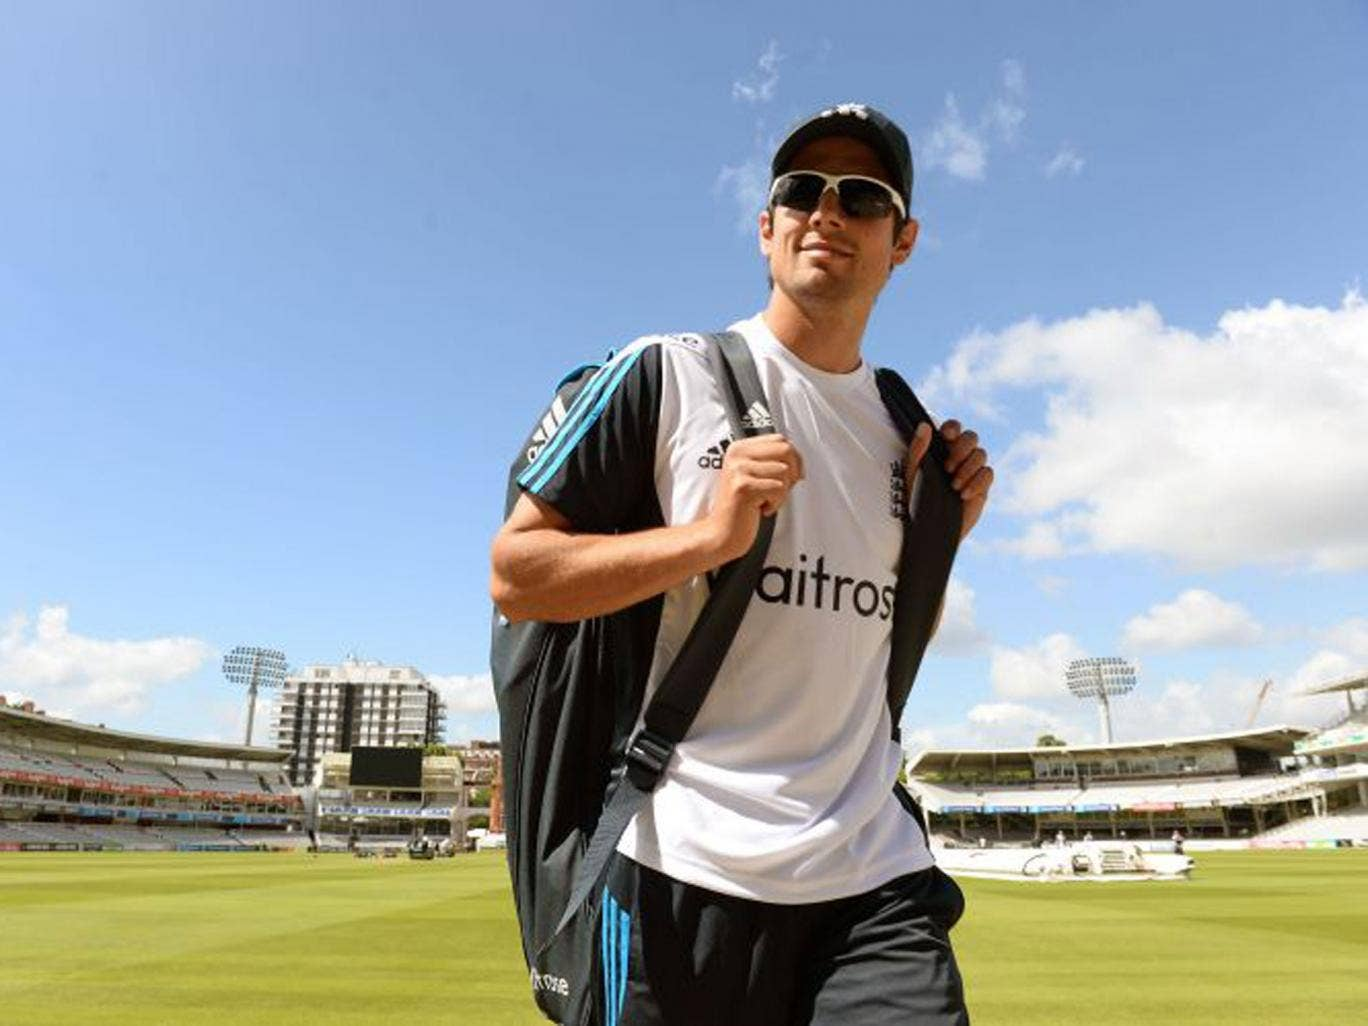 Alastair Cook, the England captain, needs runs almost as much as a win